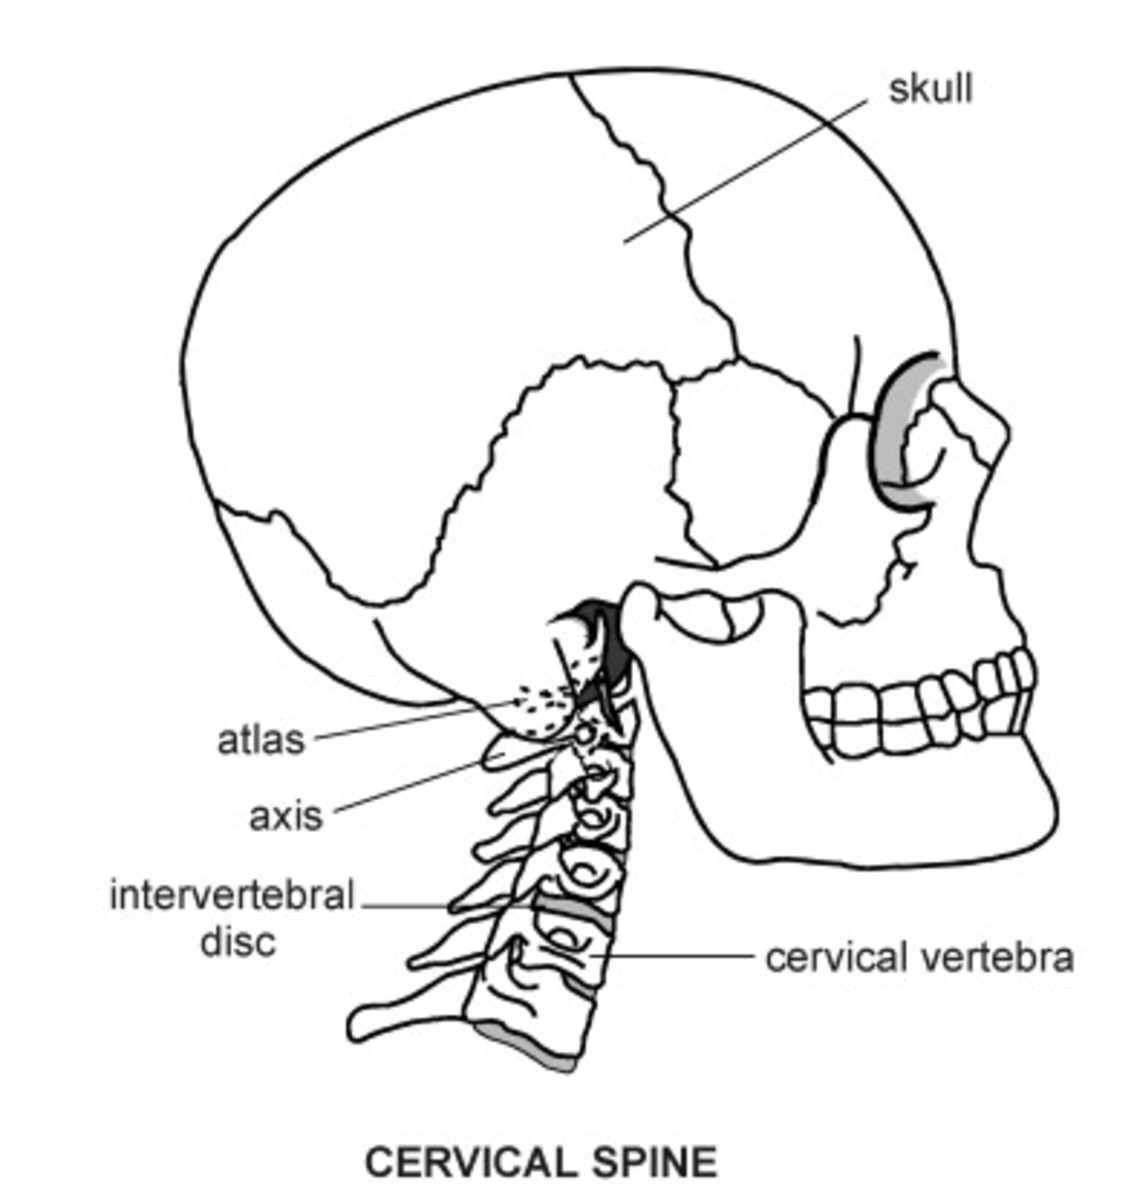 every-body-part-has-a-story-1-a-history-of-anatomical-terms